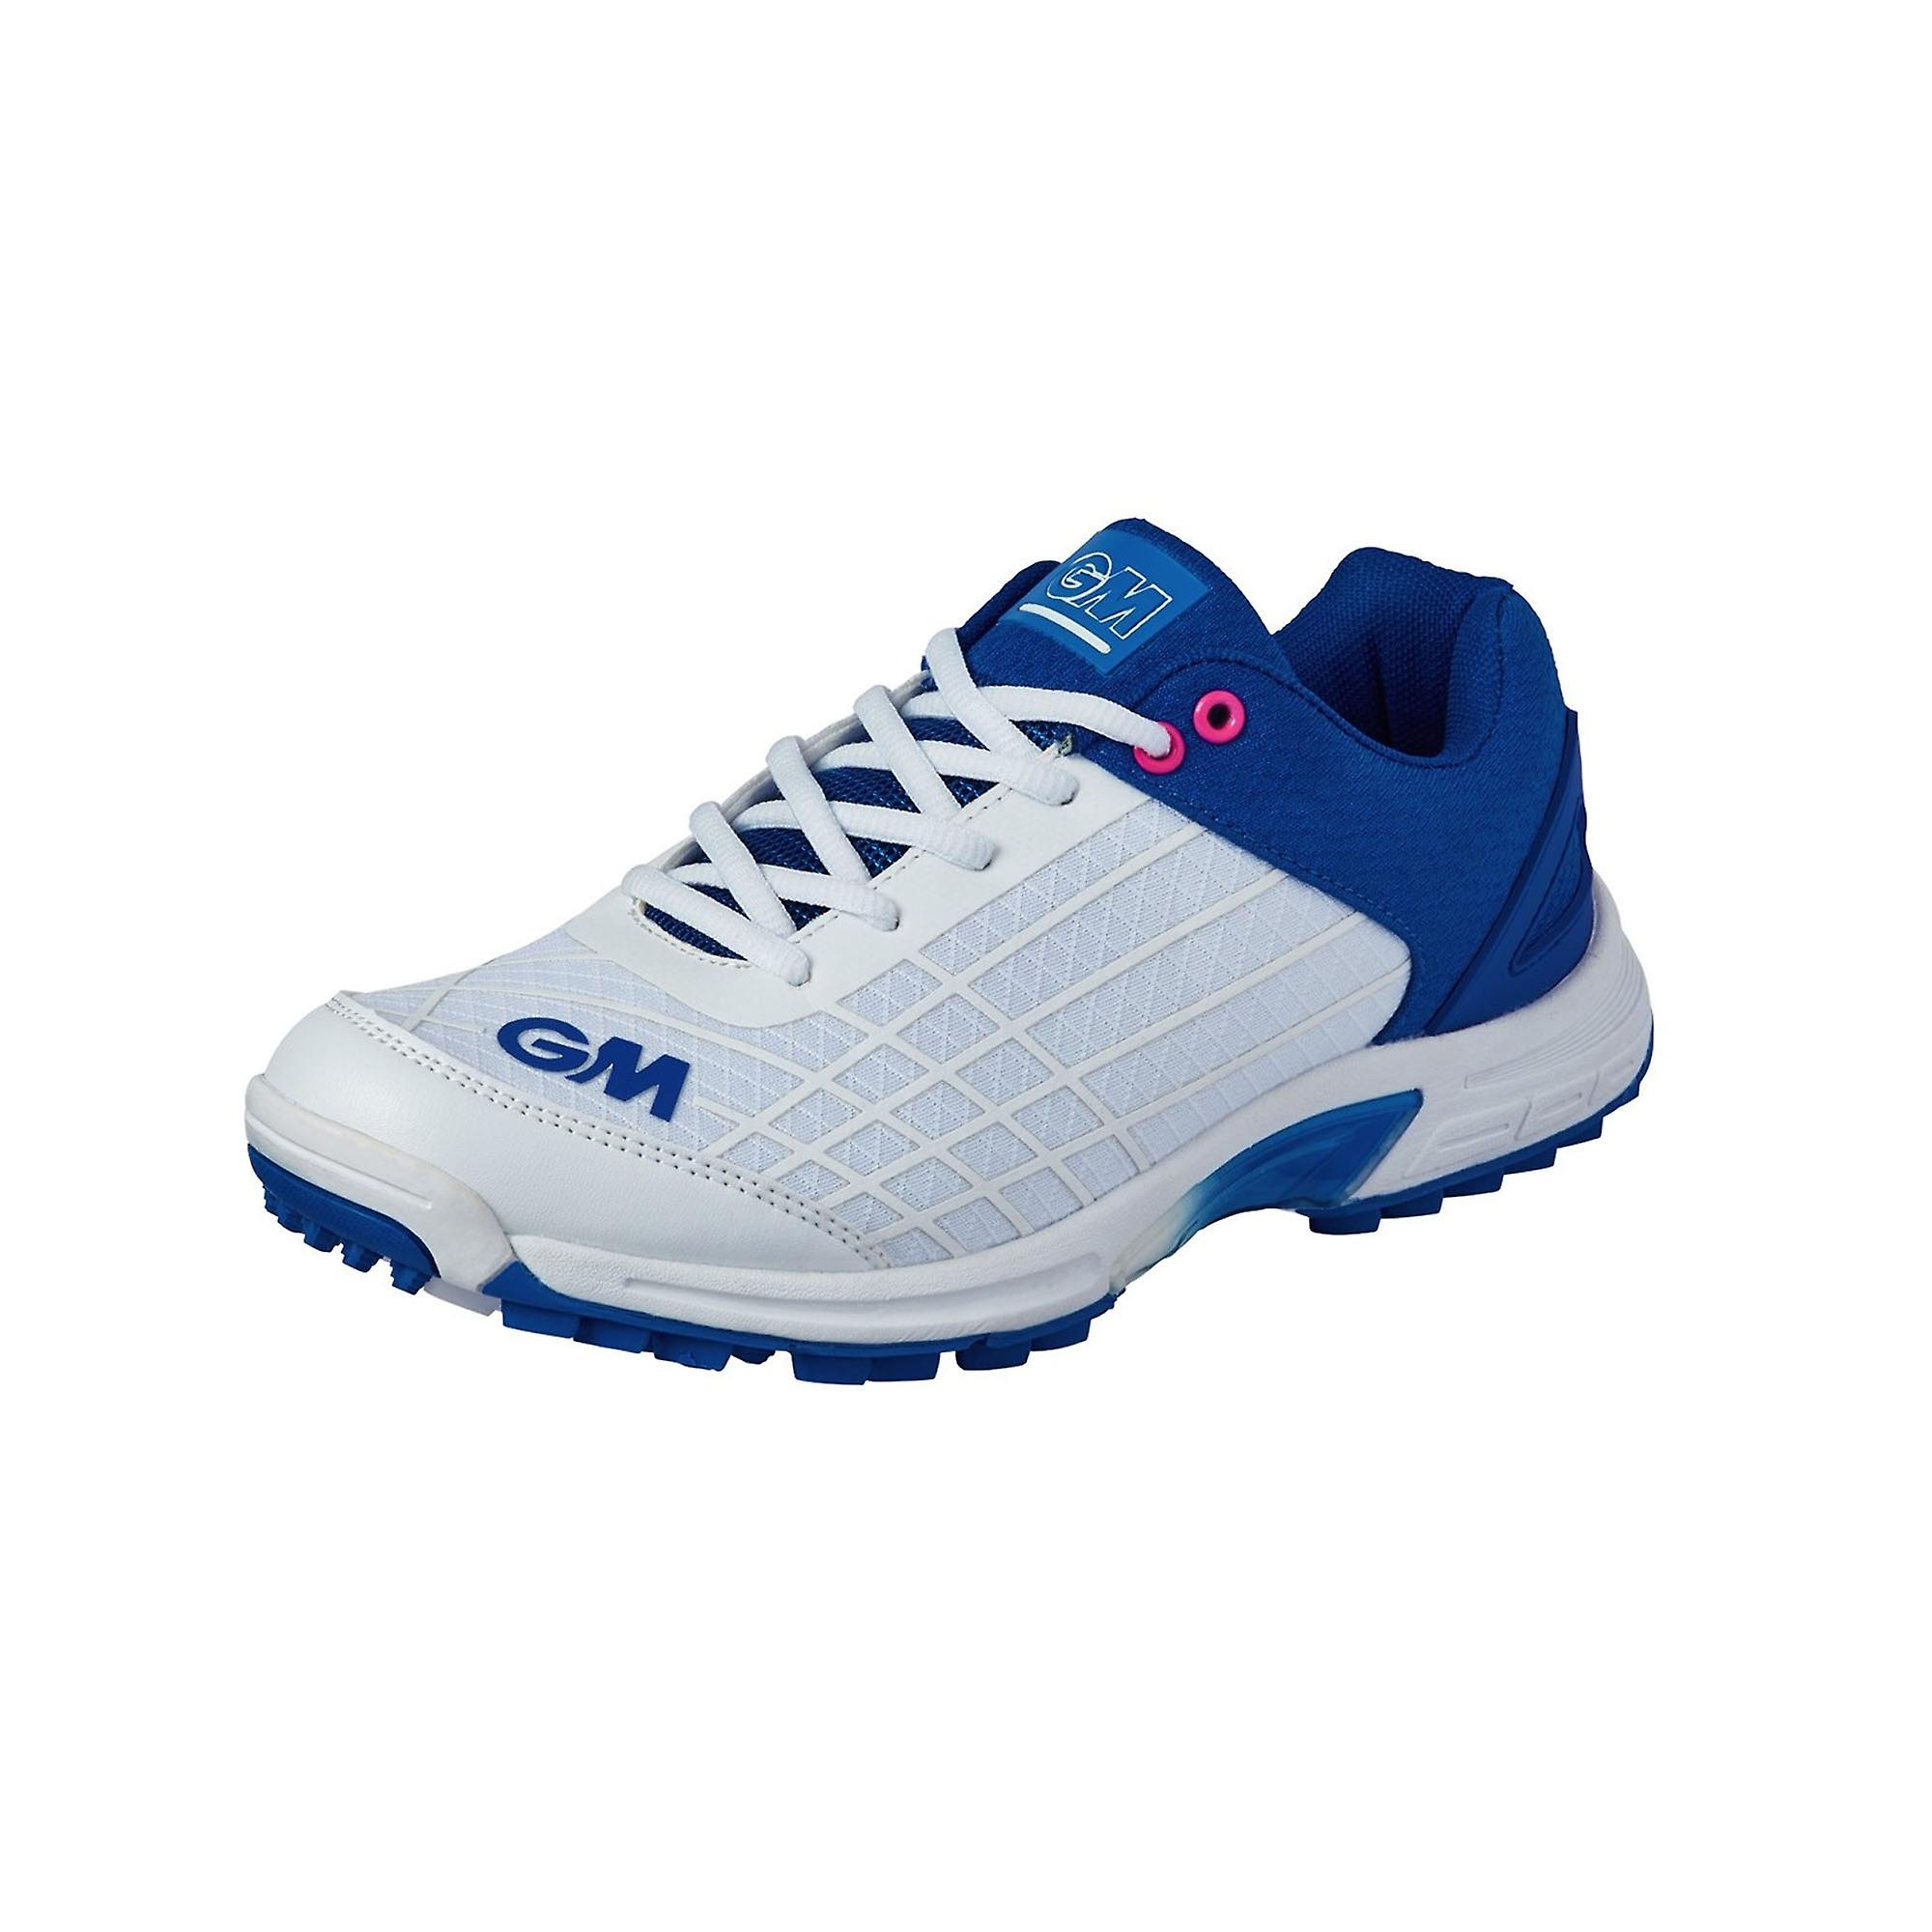 Gunn & Moore 2020 All Rounder Junior Kids Cricket Shoe Blue/White